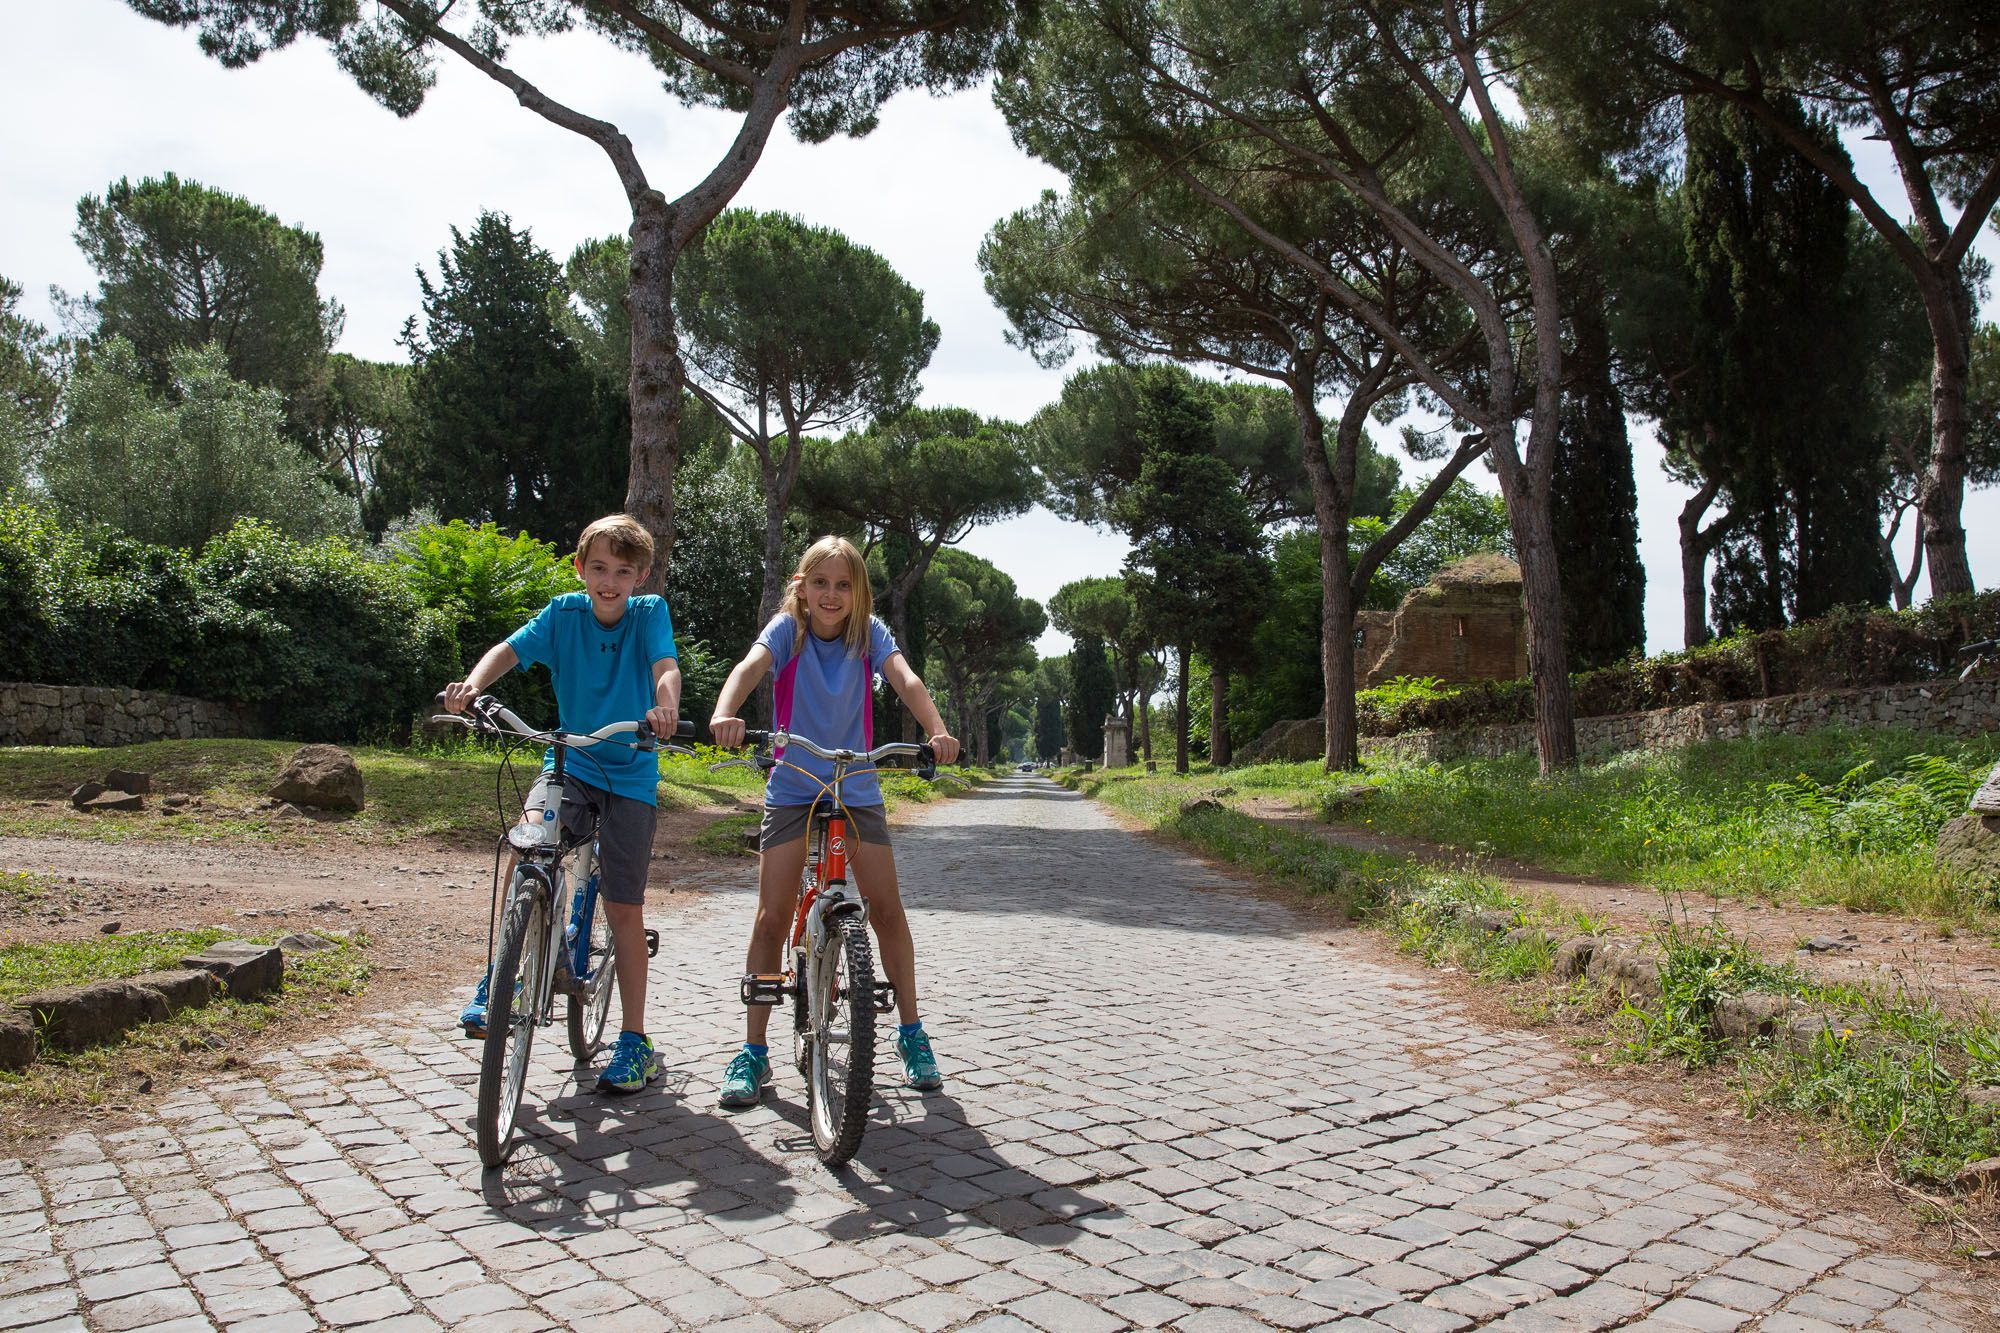 Biking the Appian Way